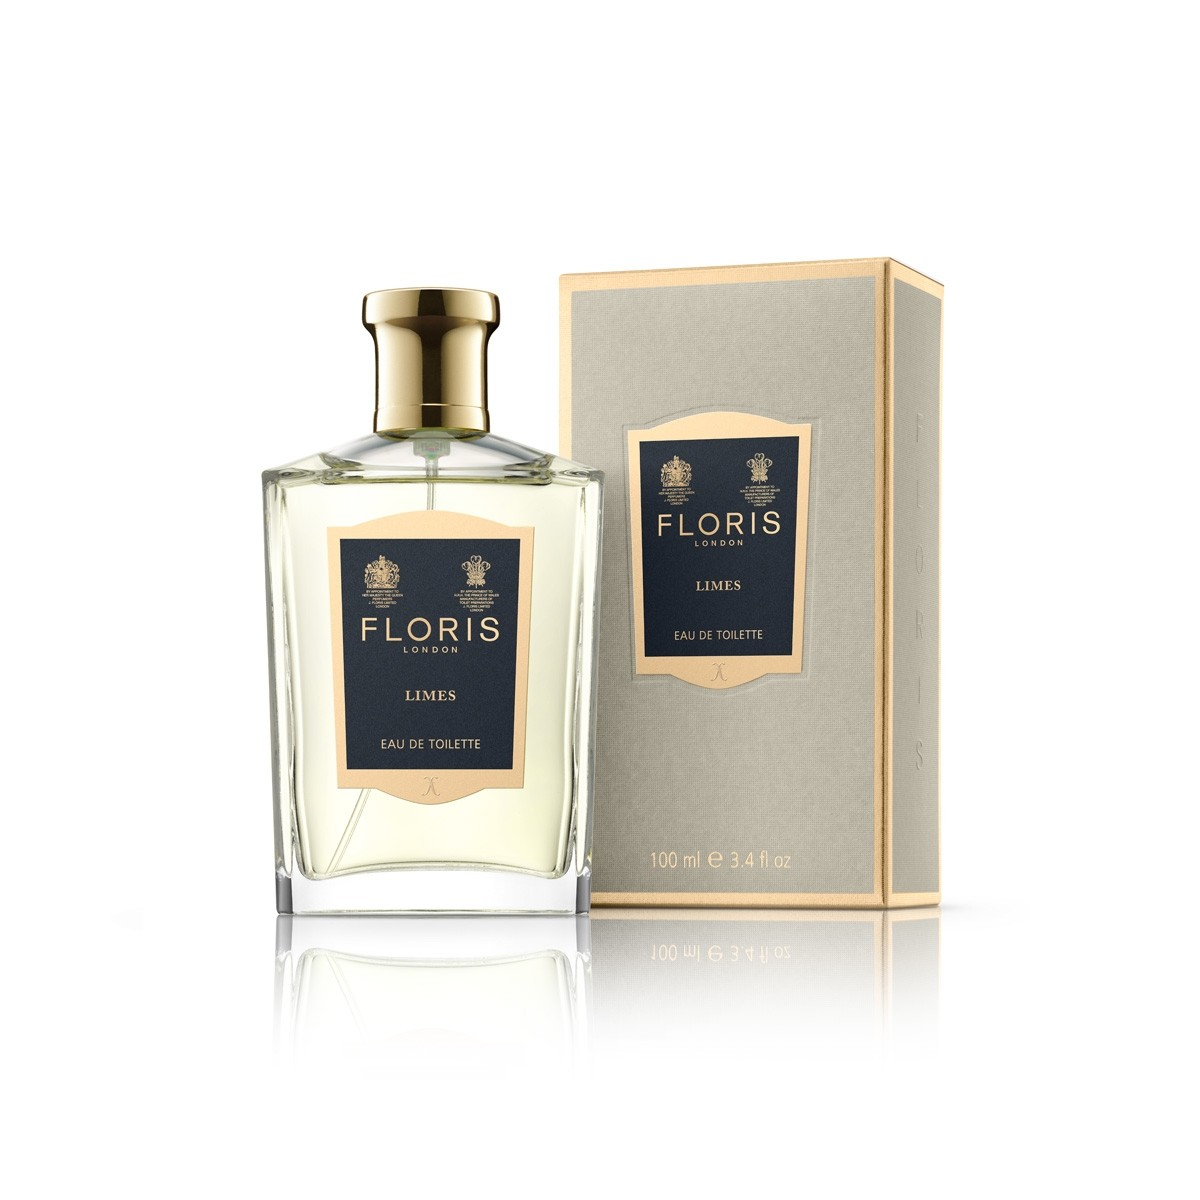 Floris Limes Eau de Toilette 100 ml